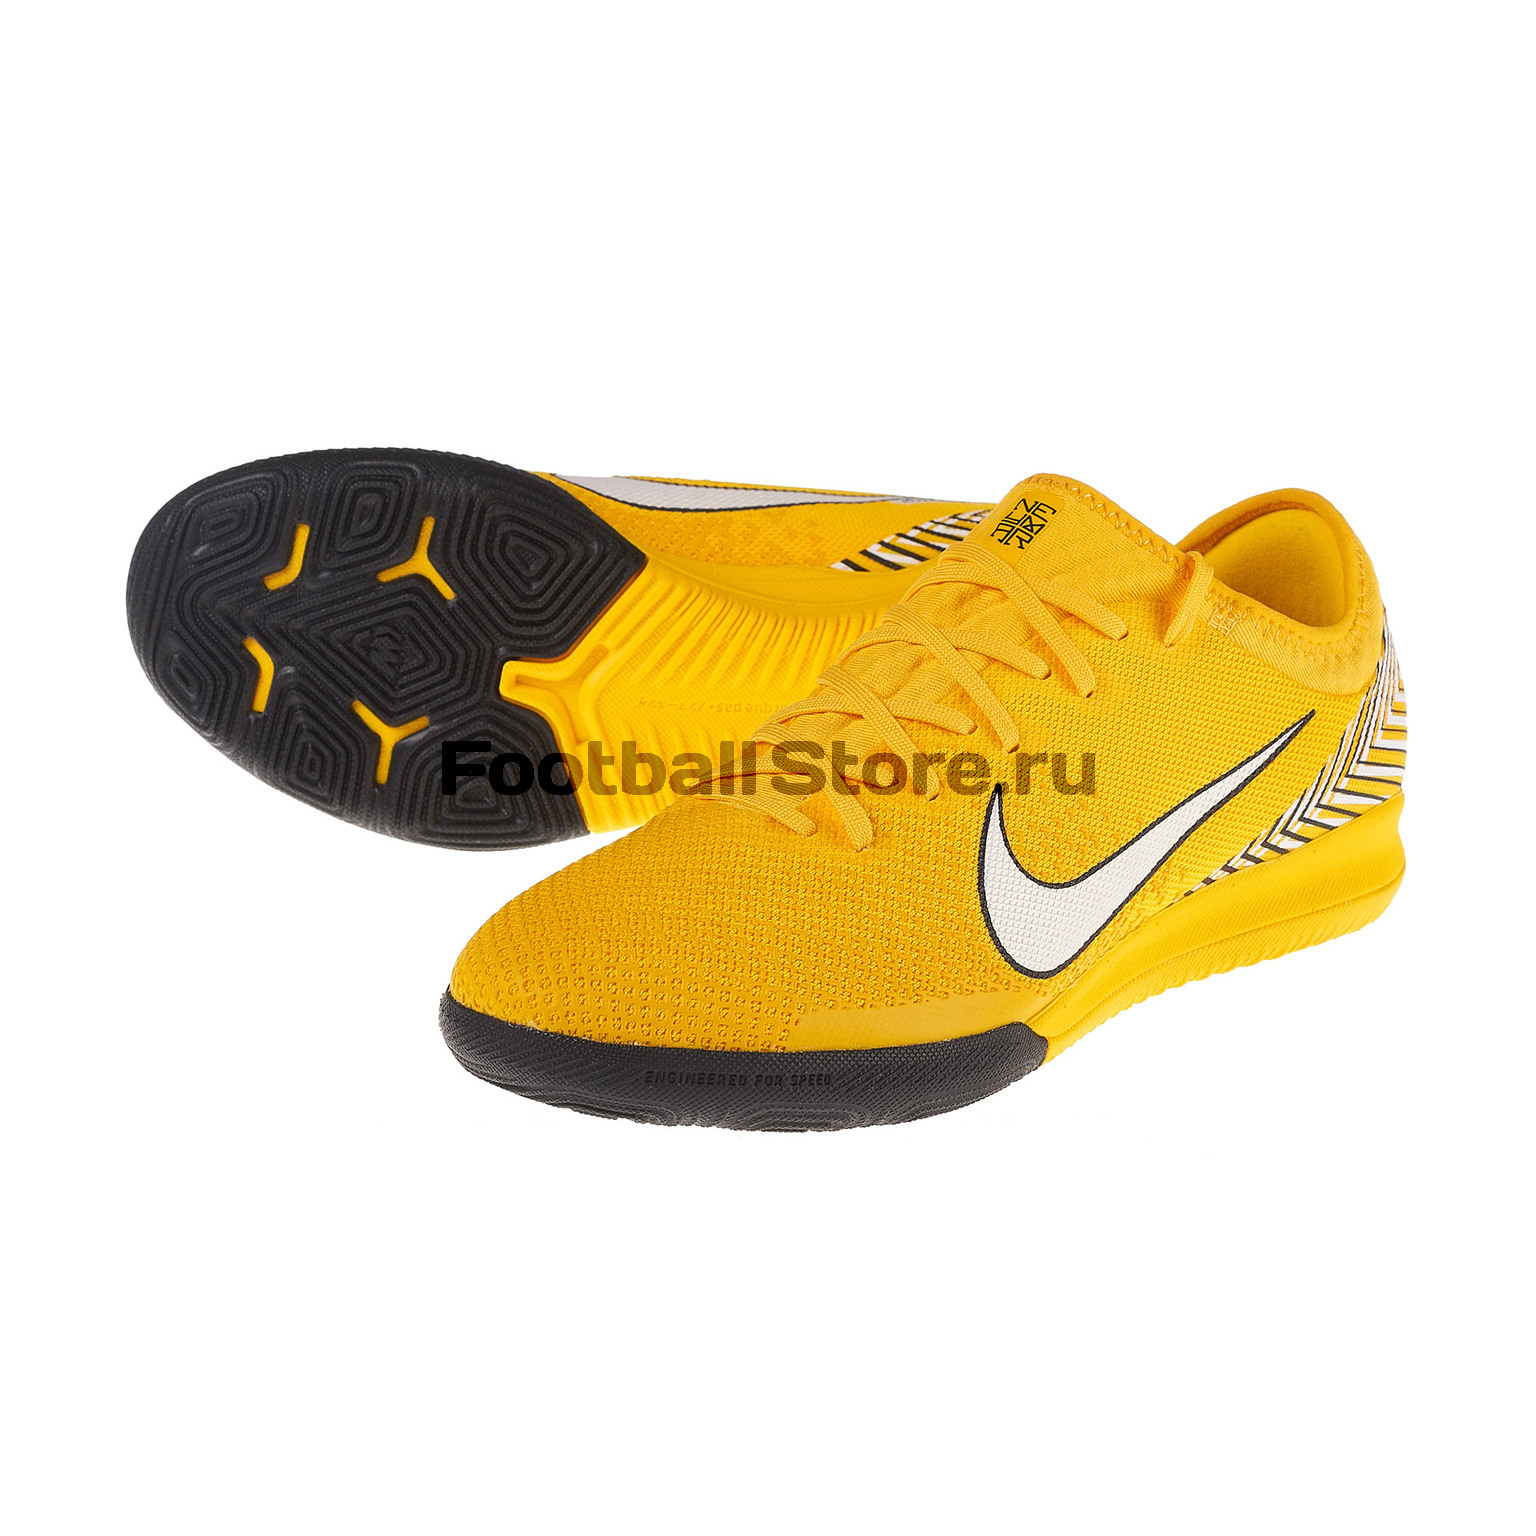 Обувь для зала Nike Vapor 12 Pro Neymar IC AO4496-710 спортинвентарь nike чехол для iphone 6 на руку nike vapor flash arm band 2 0 n rn 50 078 os